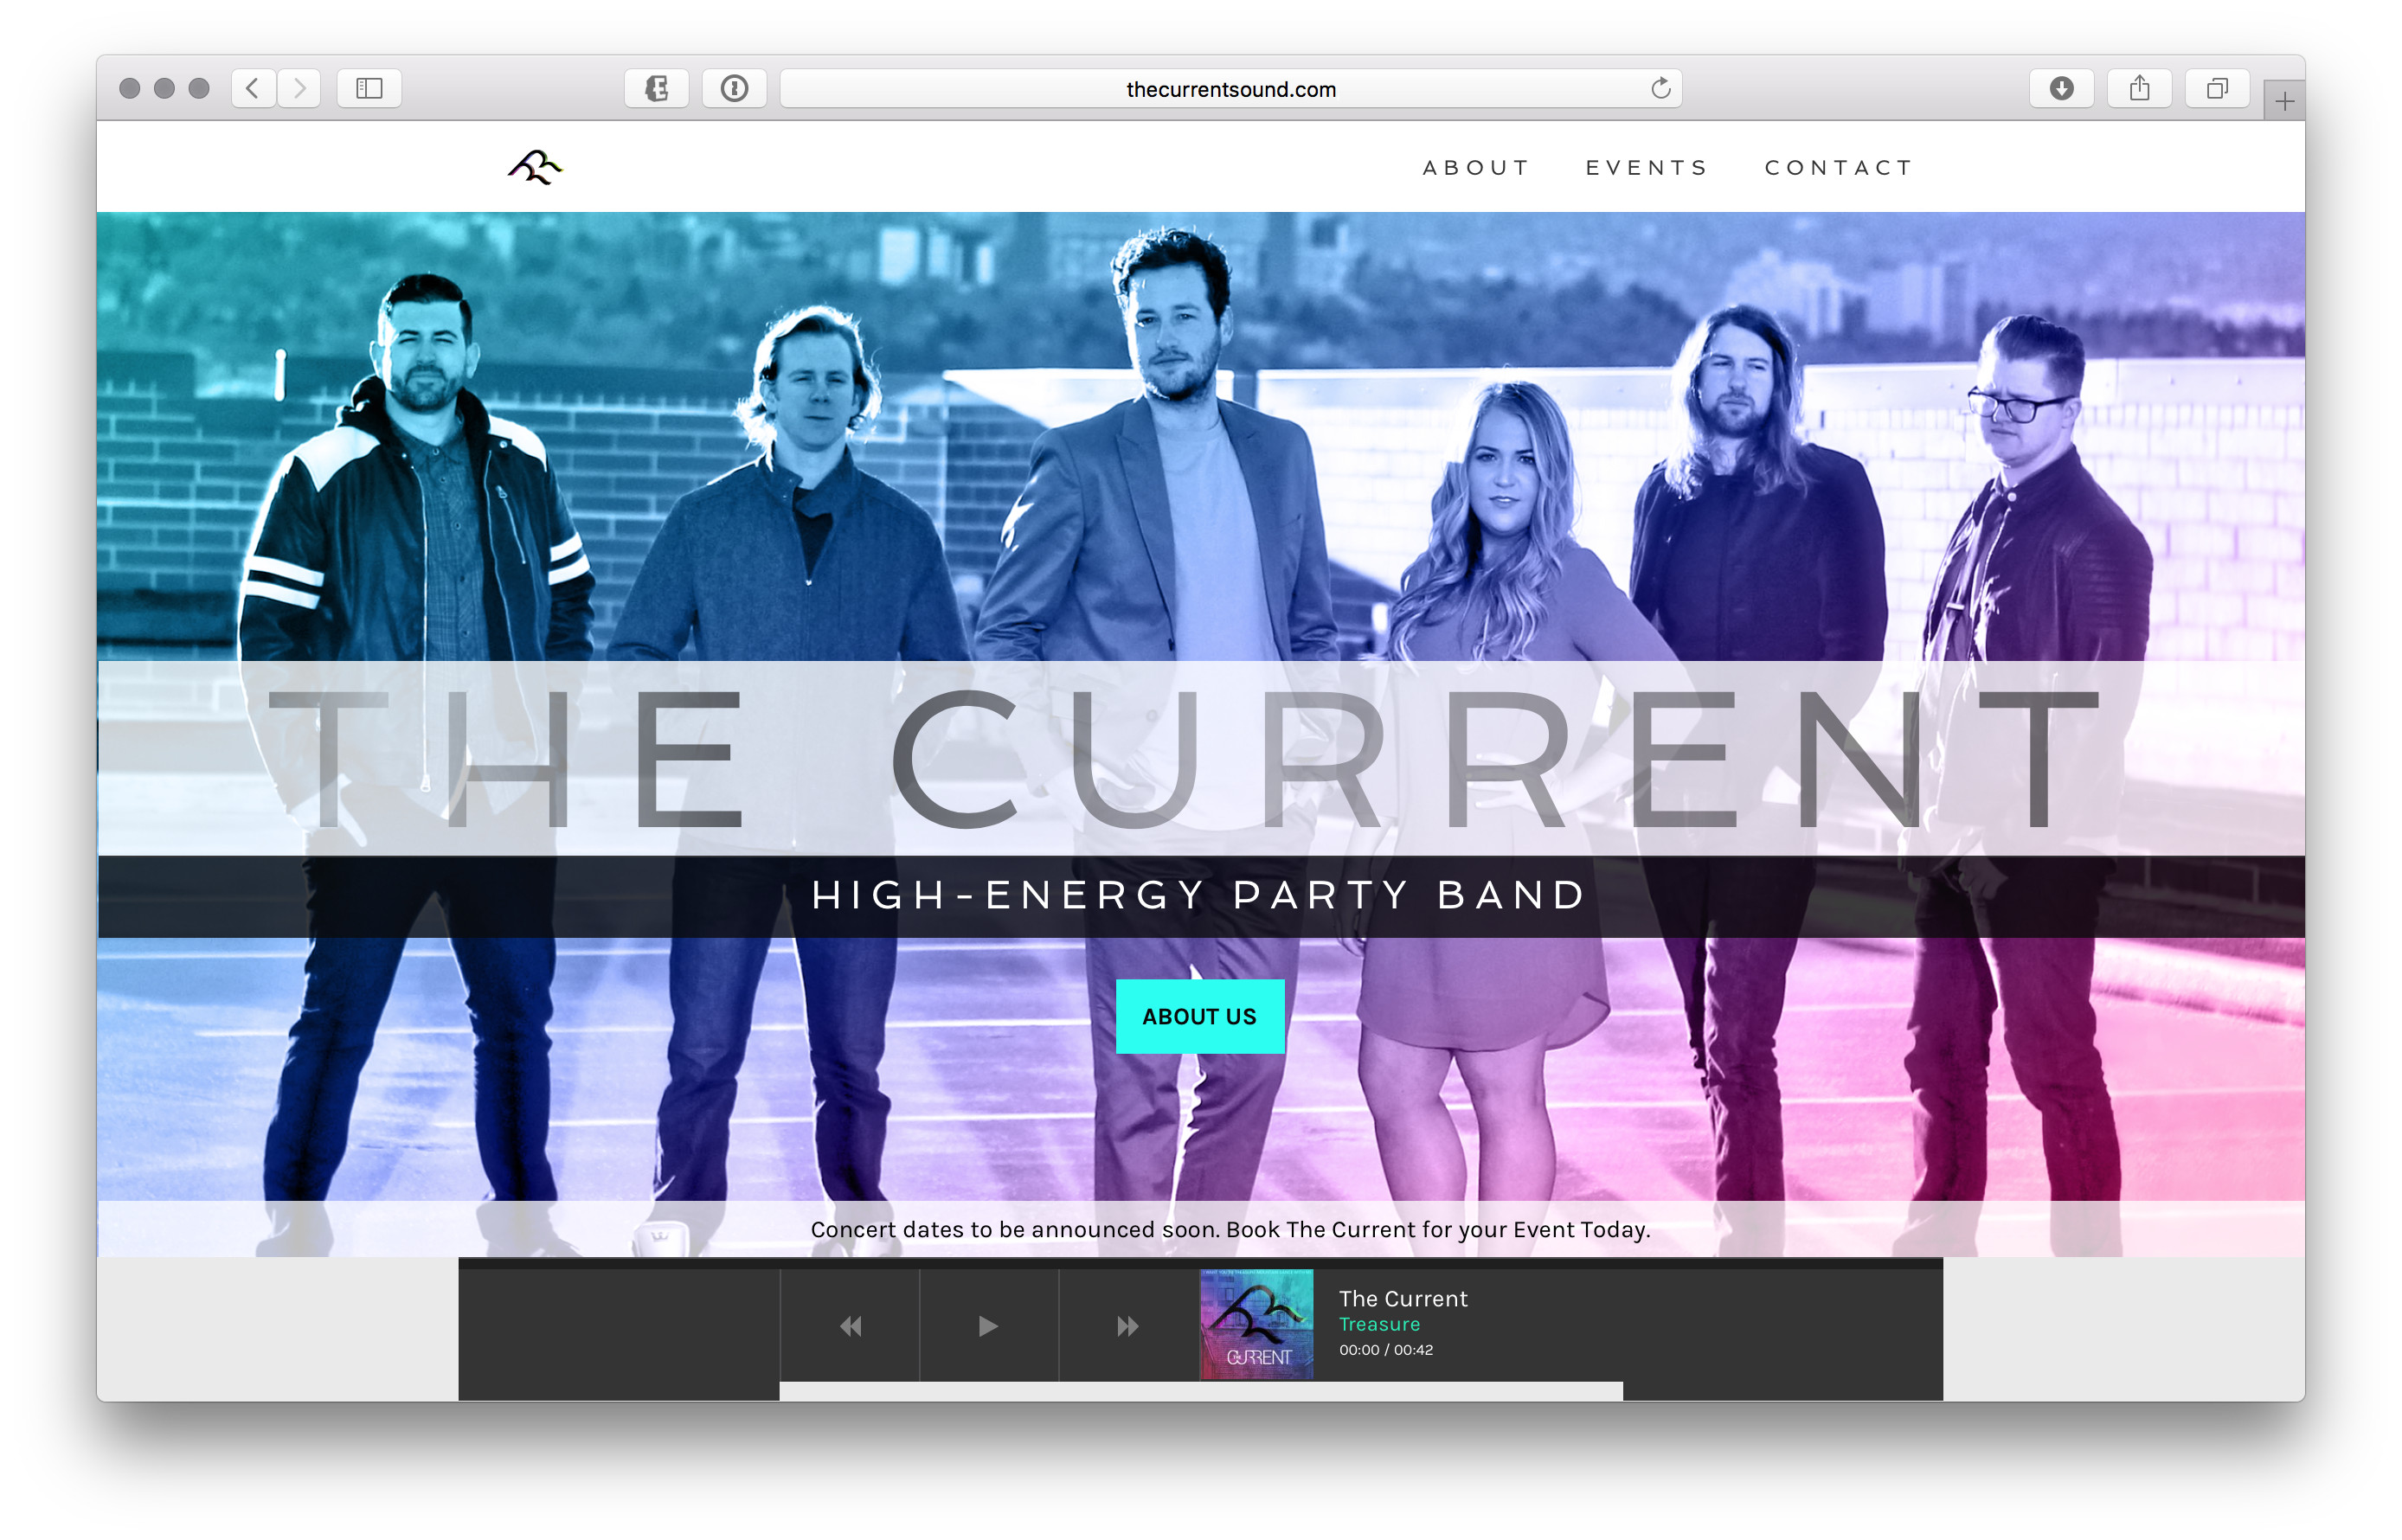 Created website for The Current, a high-energy party band from Salt Lake City, Utah. Click the image above to visit the website.